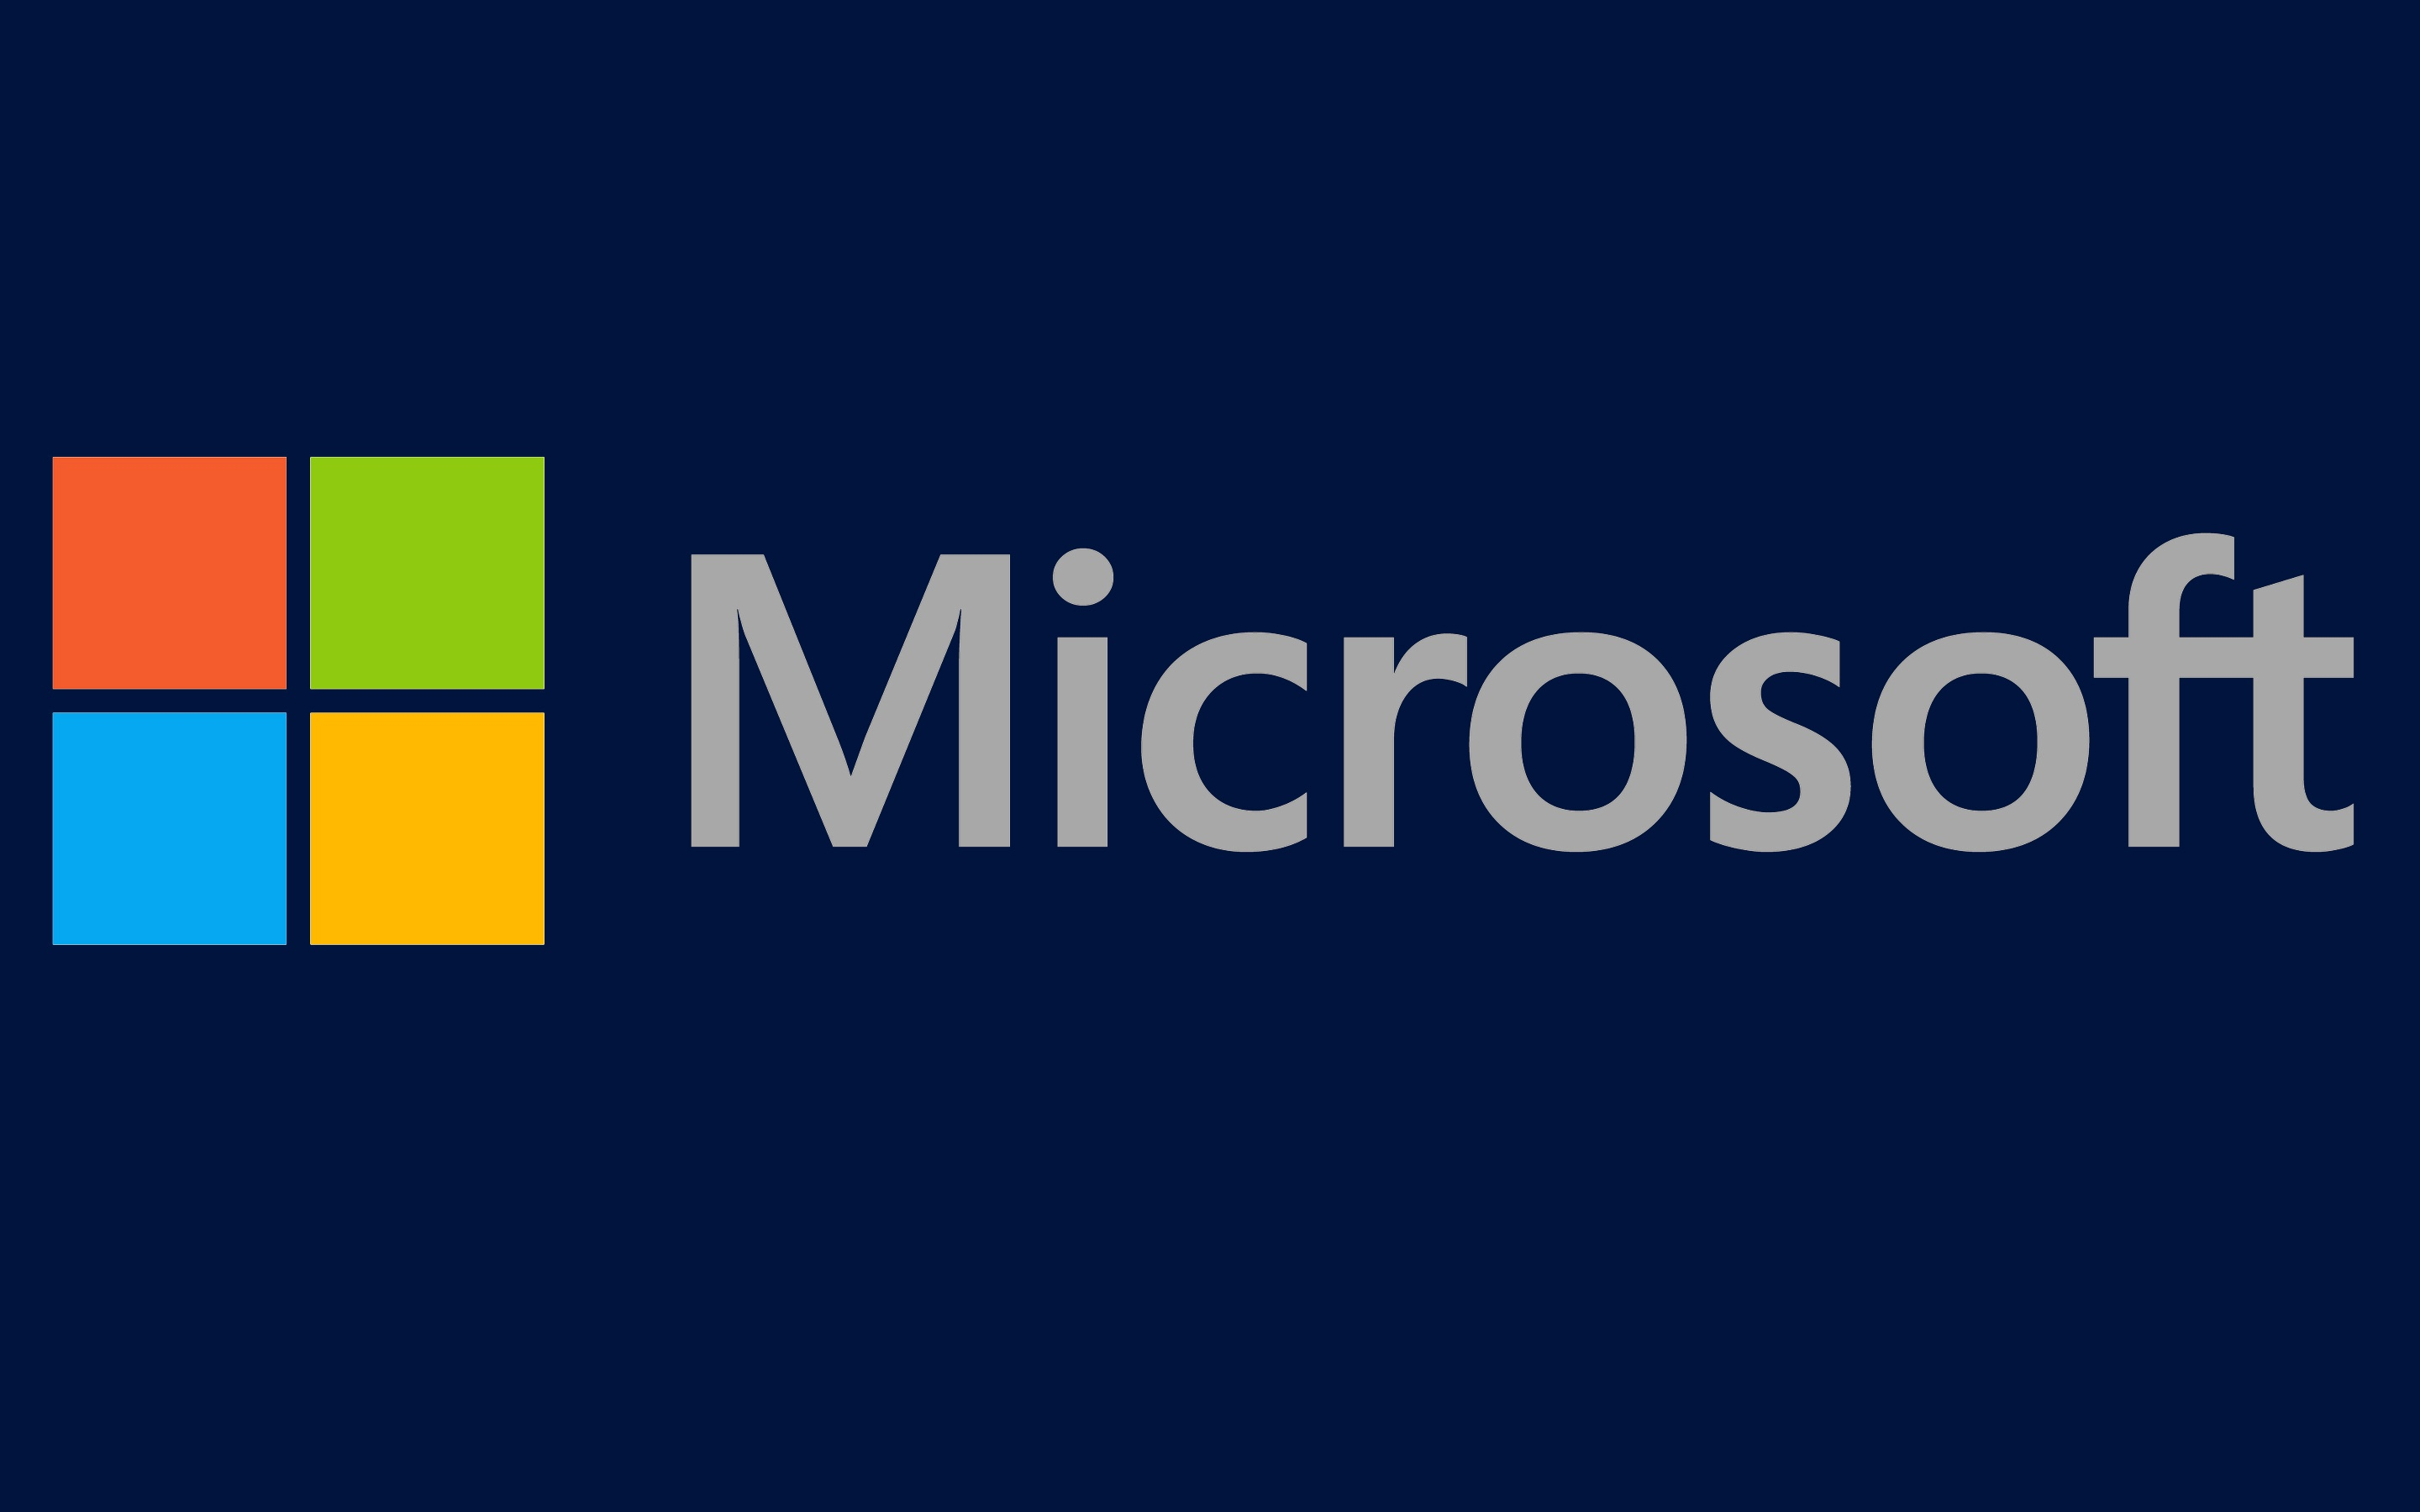 Microsoft's Windows shakeup continues internally